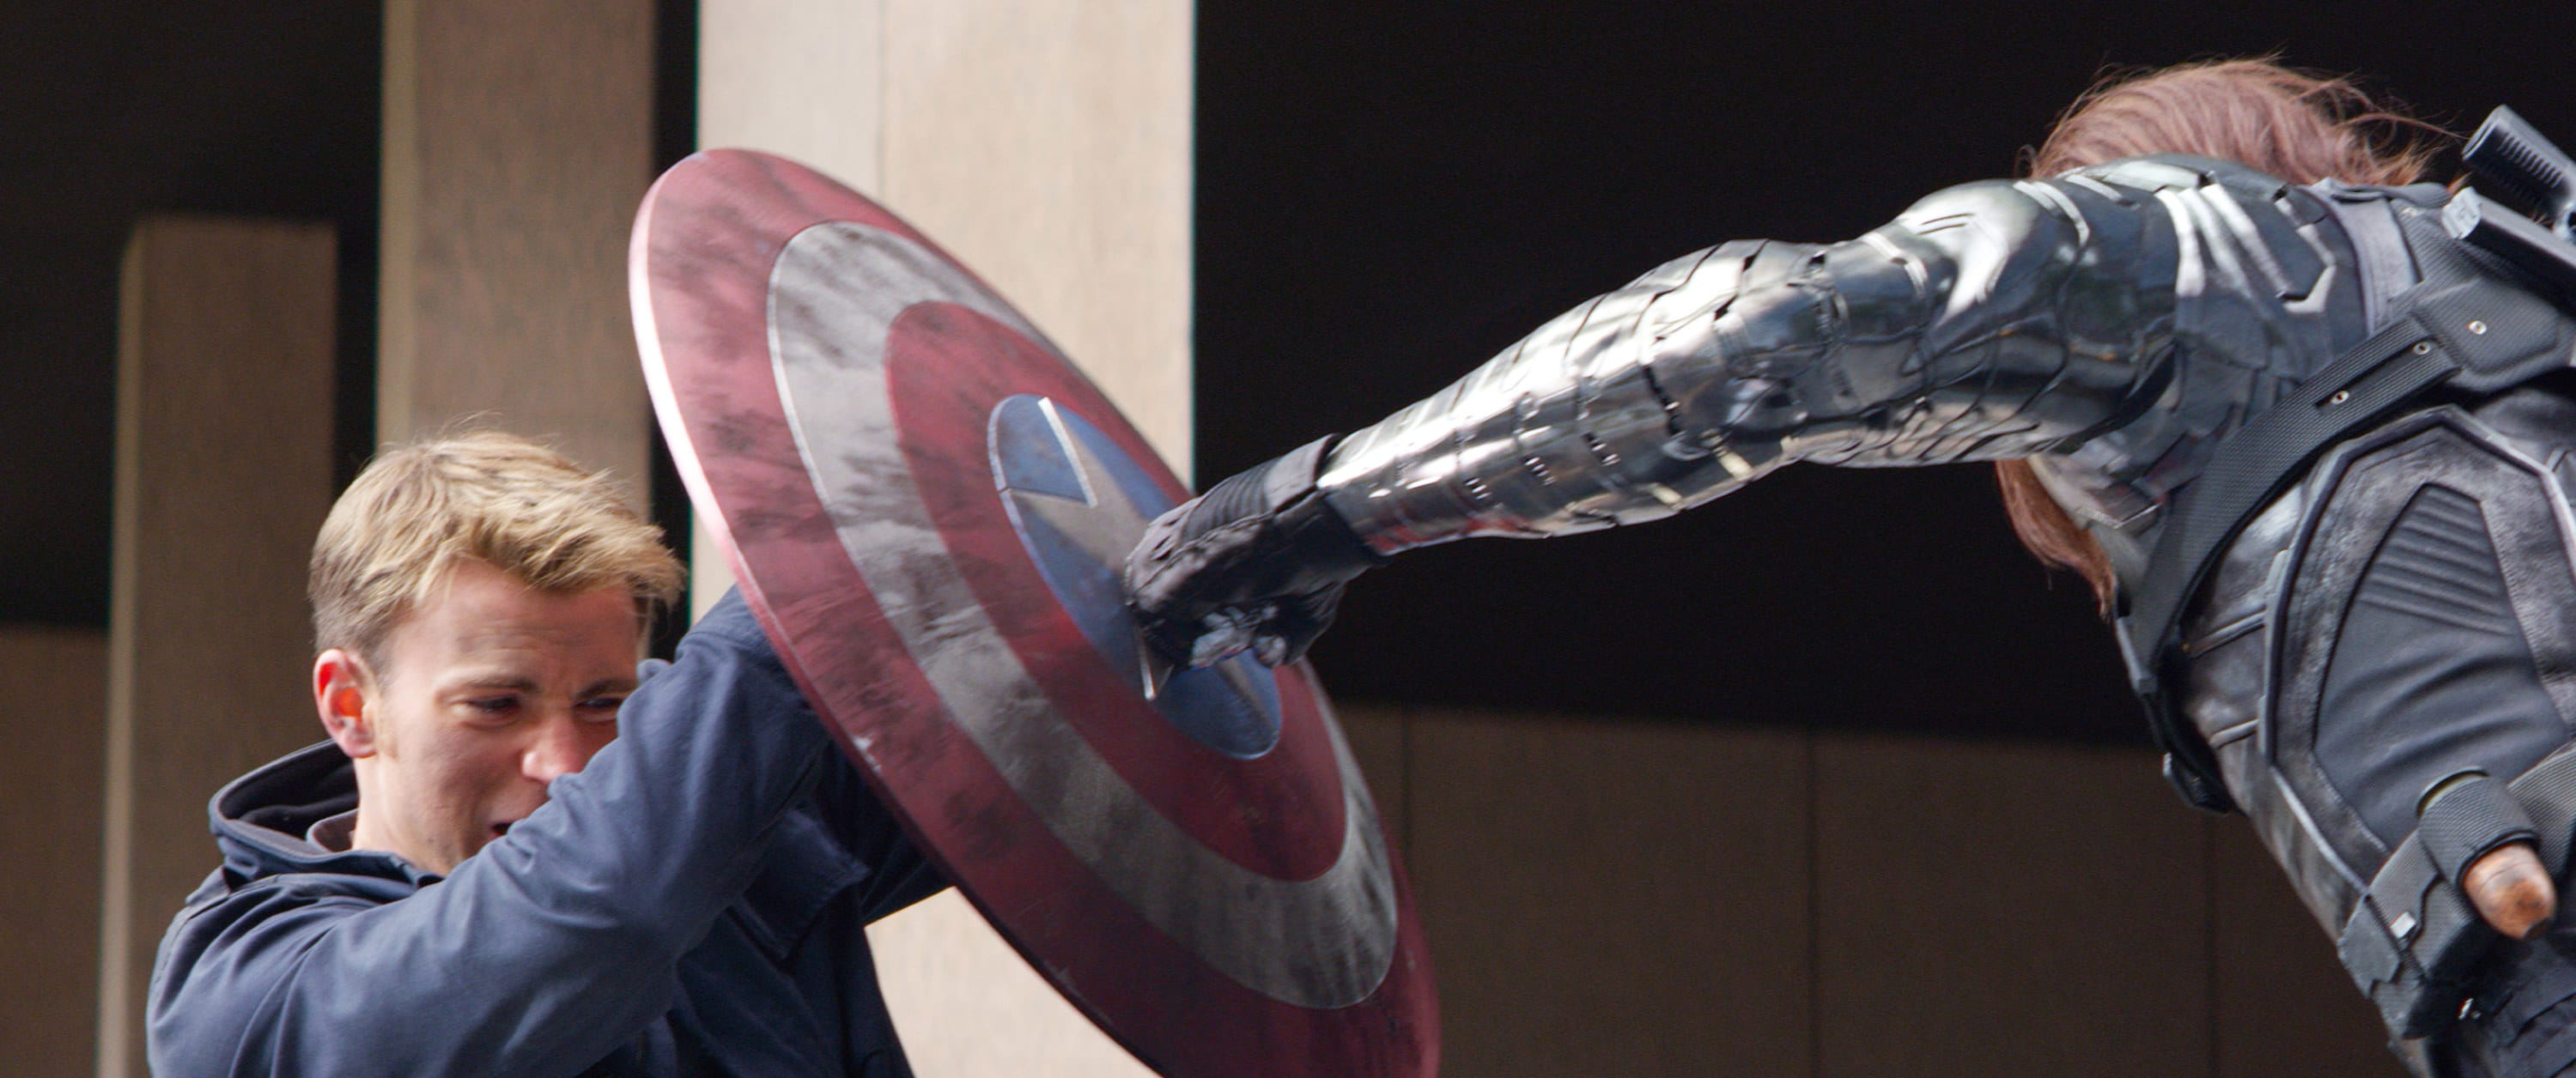 Captain America blocks a punch from the Winter Soldier with his shield